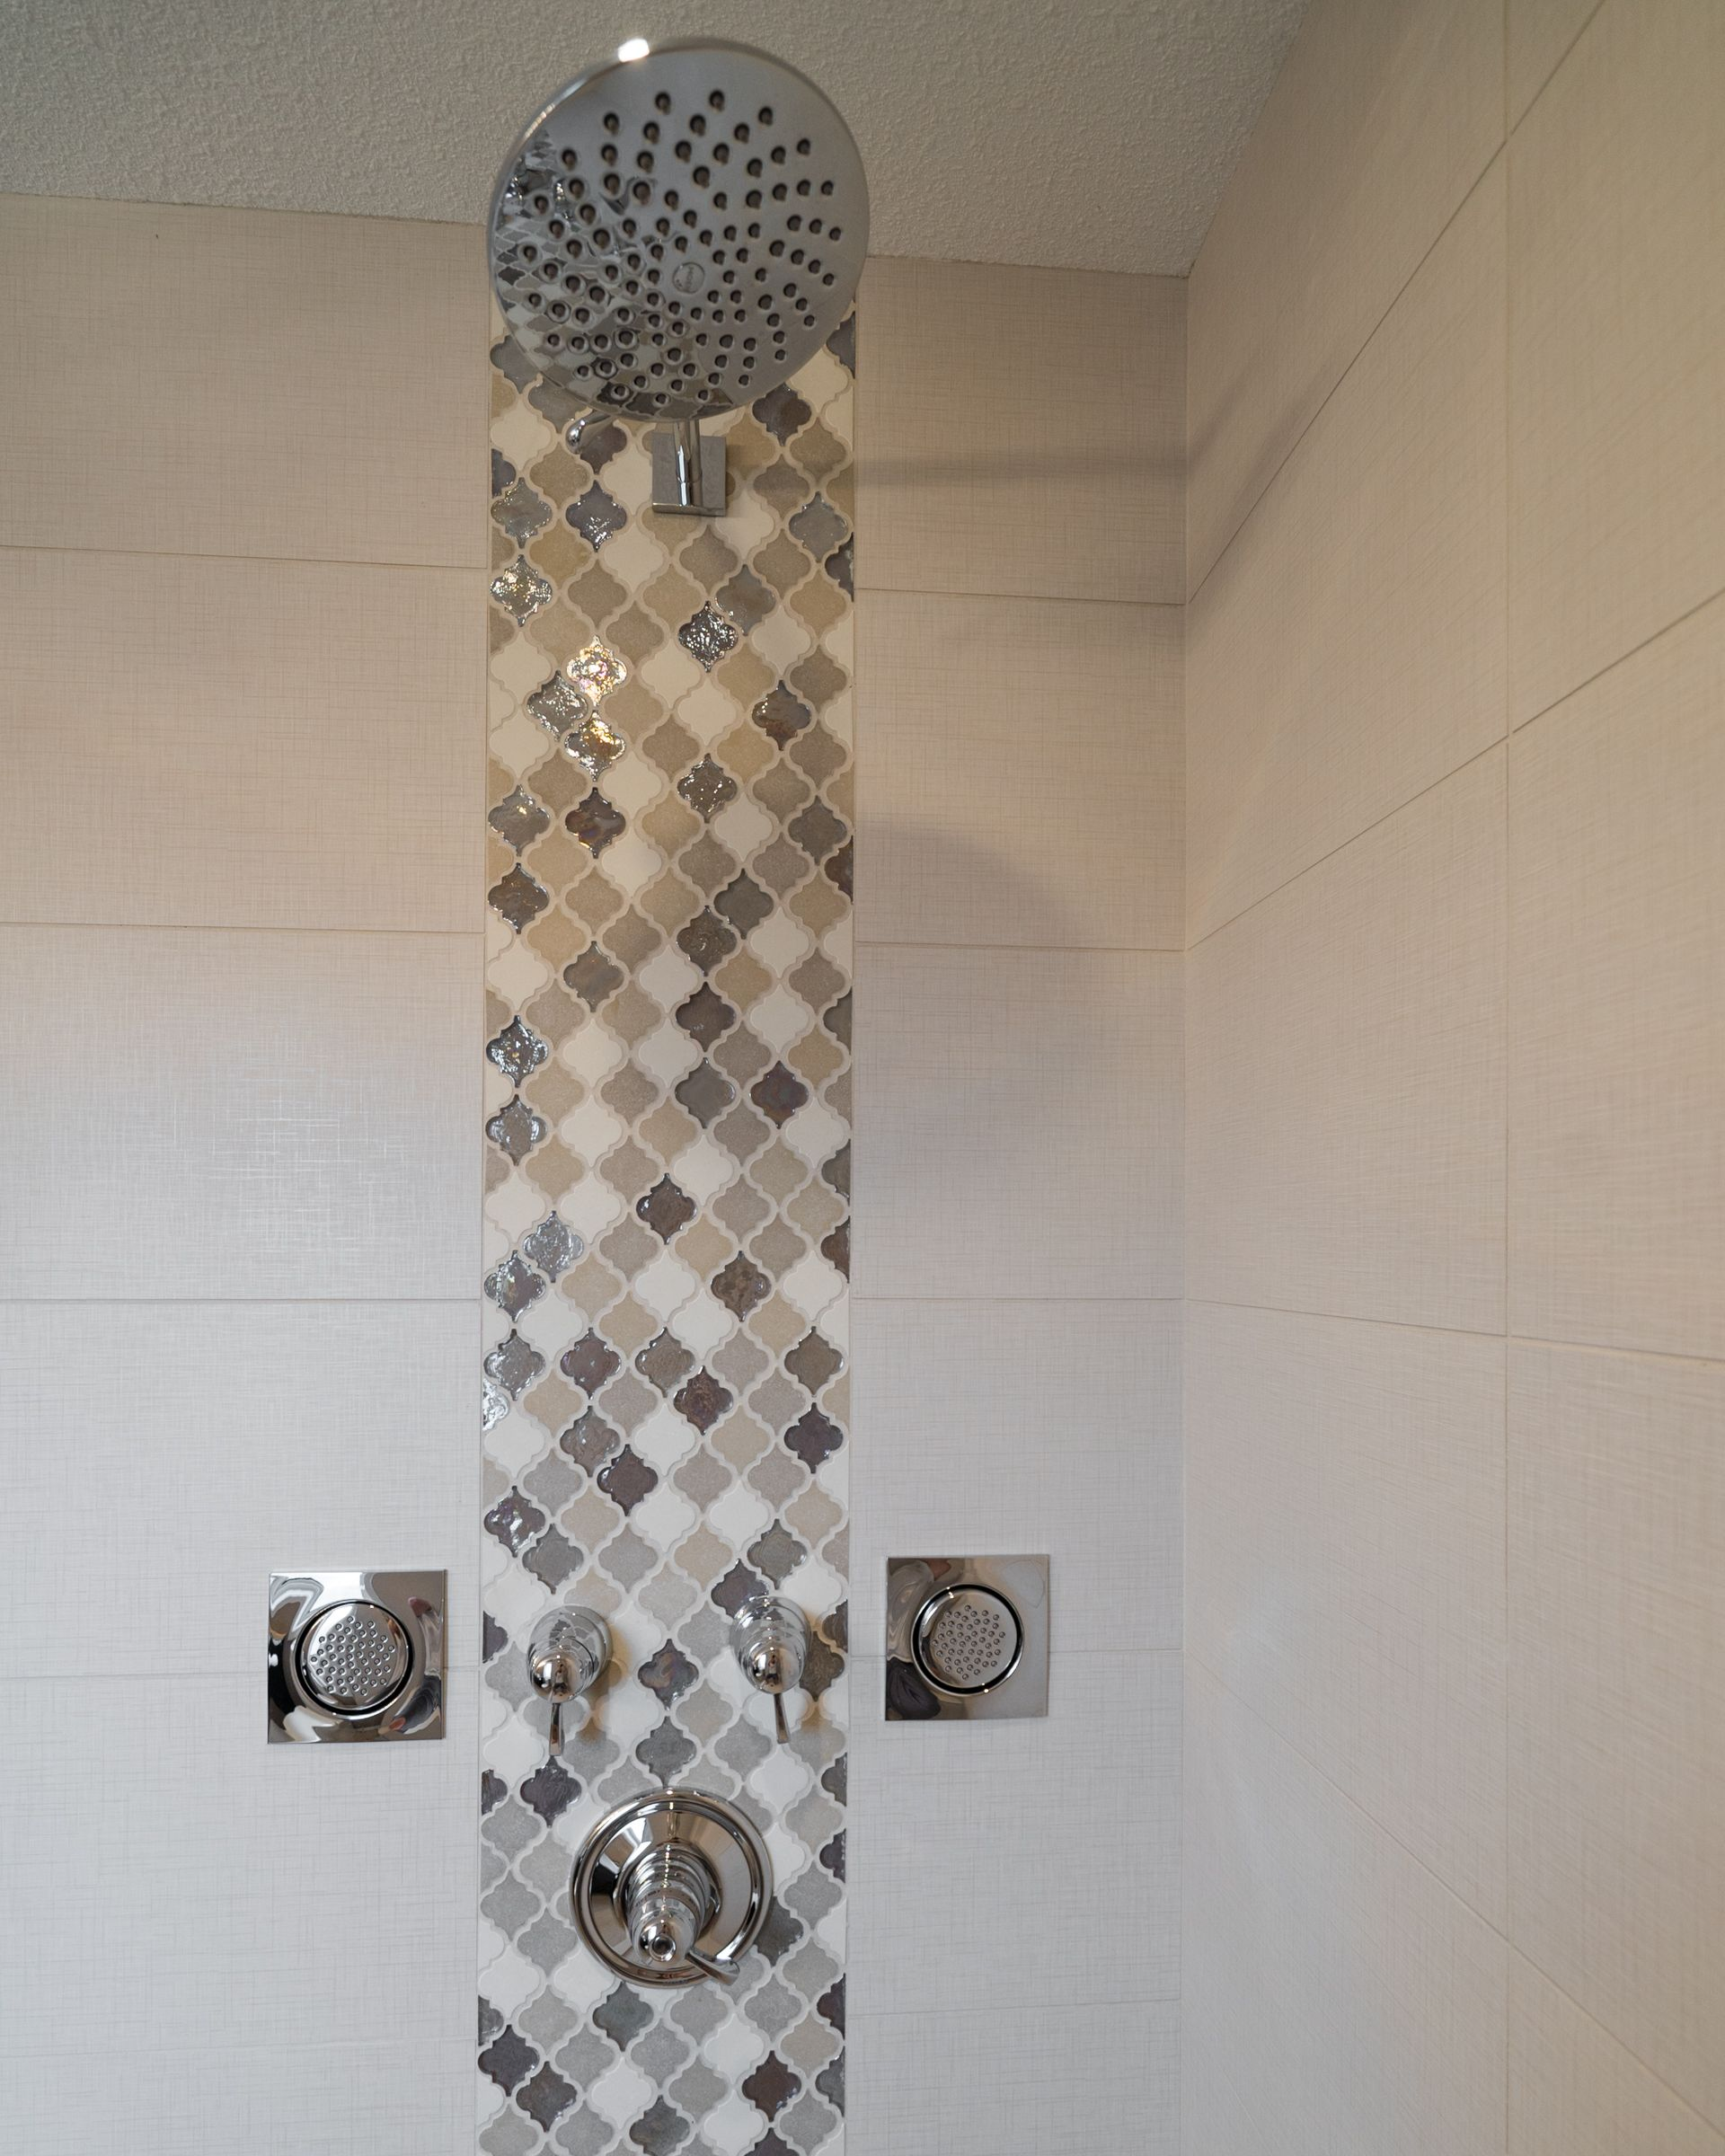 Custom tile stainless steel shower within the en-suite bathroom!